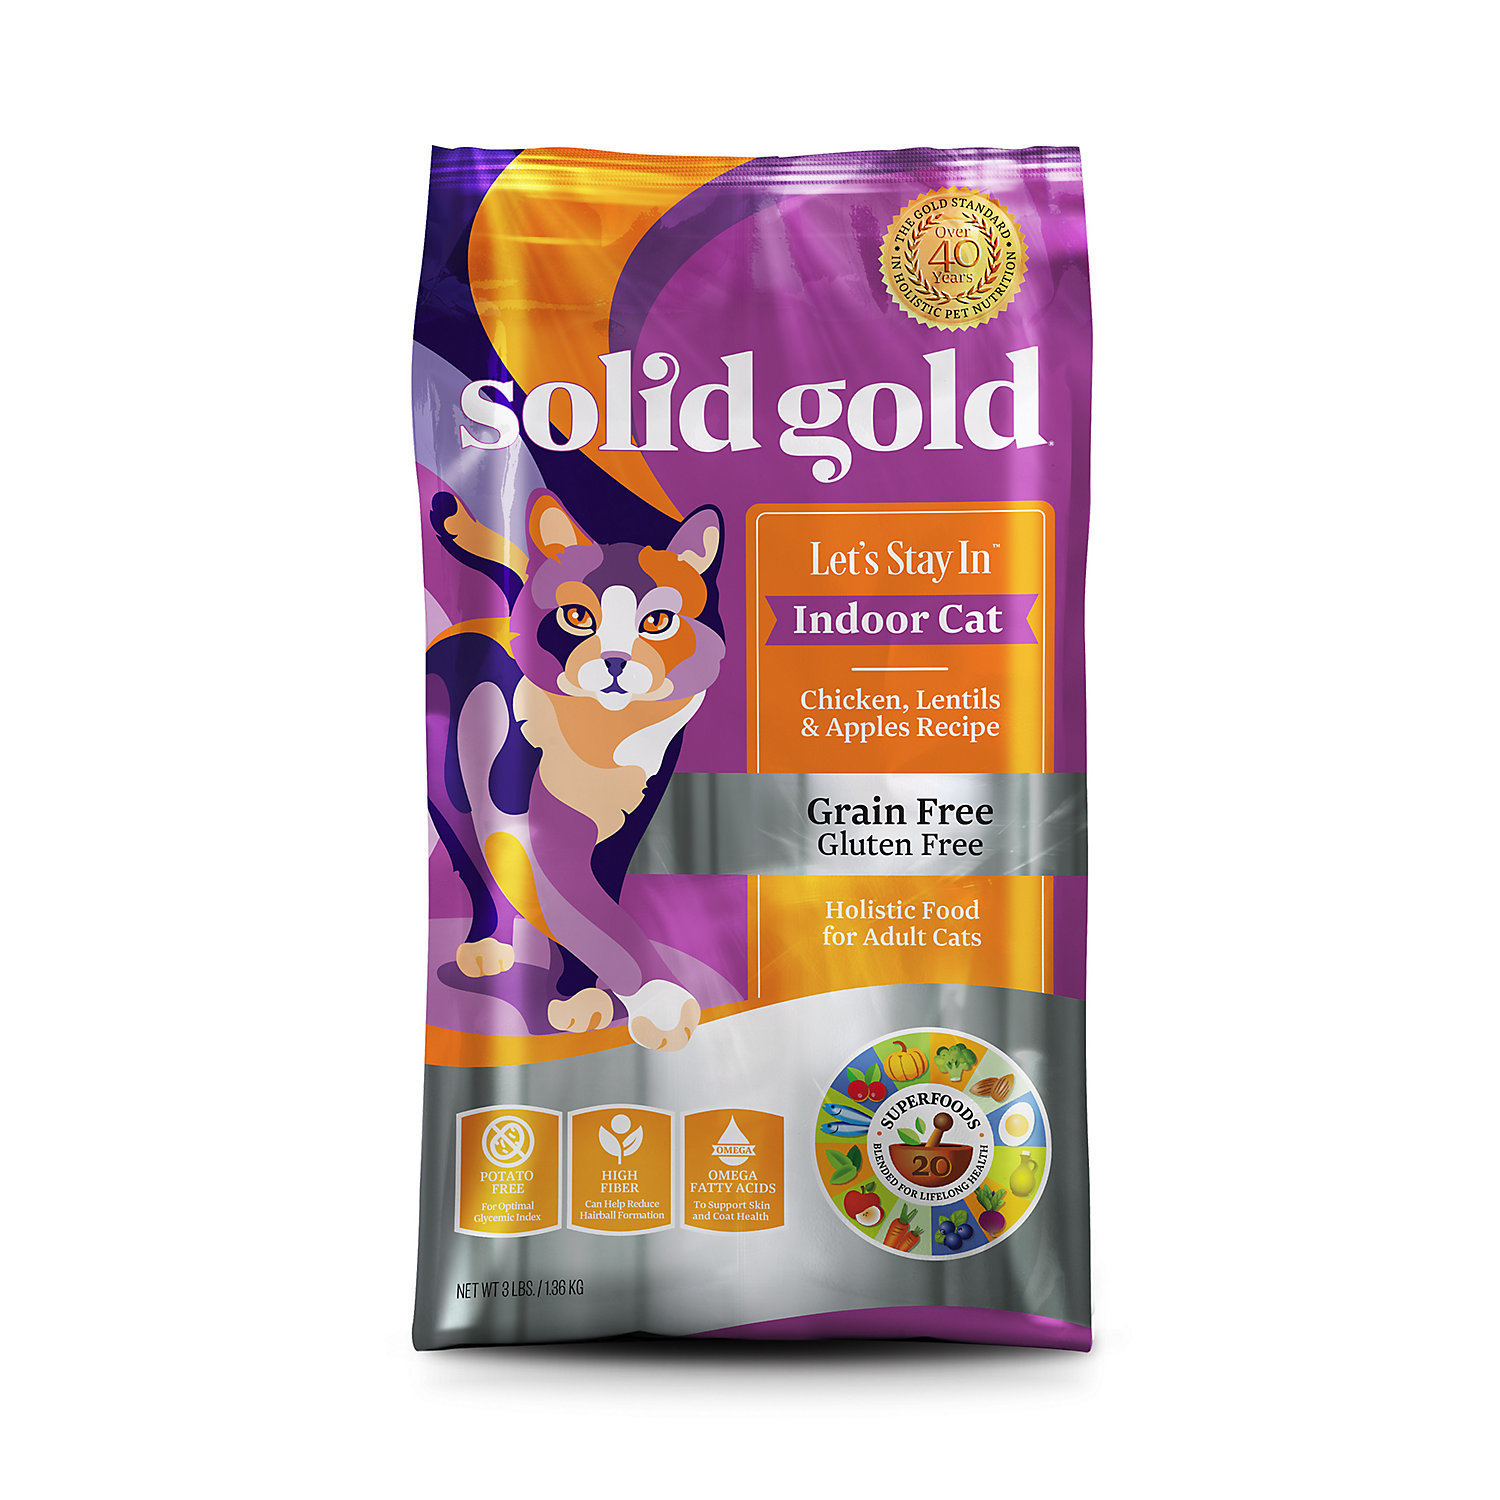 Solid Gold Indoor Cat Dry Food; Let's Stay In Grain Free With Real Chicken, 12lb (11/18) (A.M2)